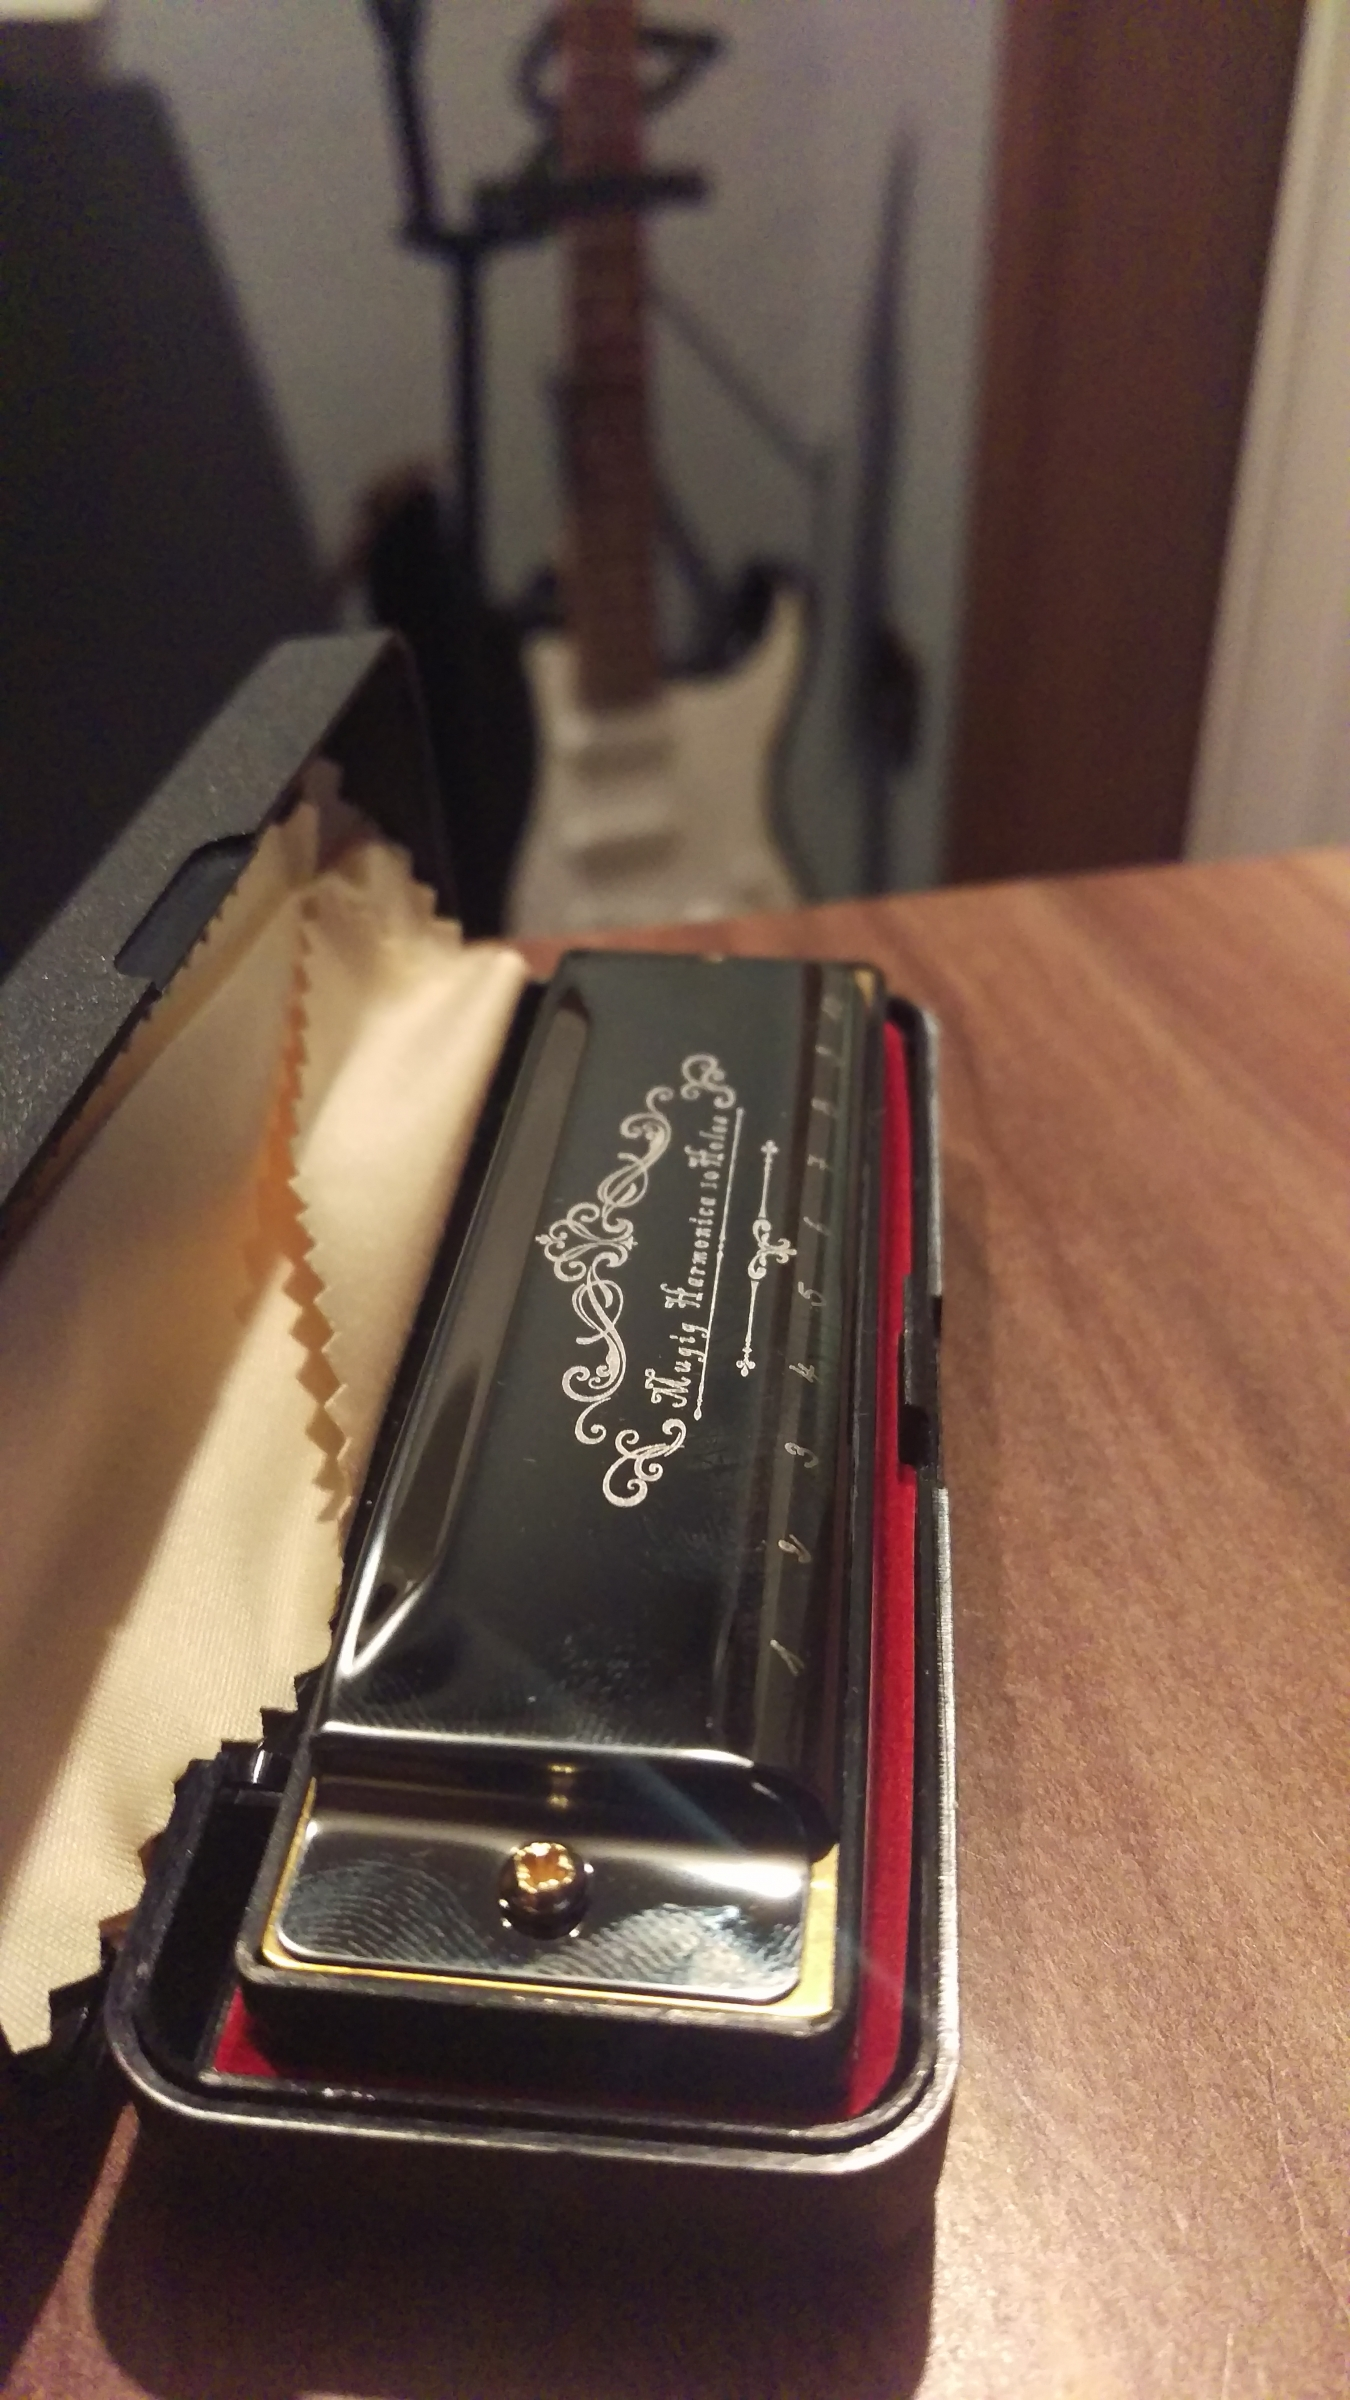 Great Harmonica for an affordable price